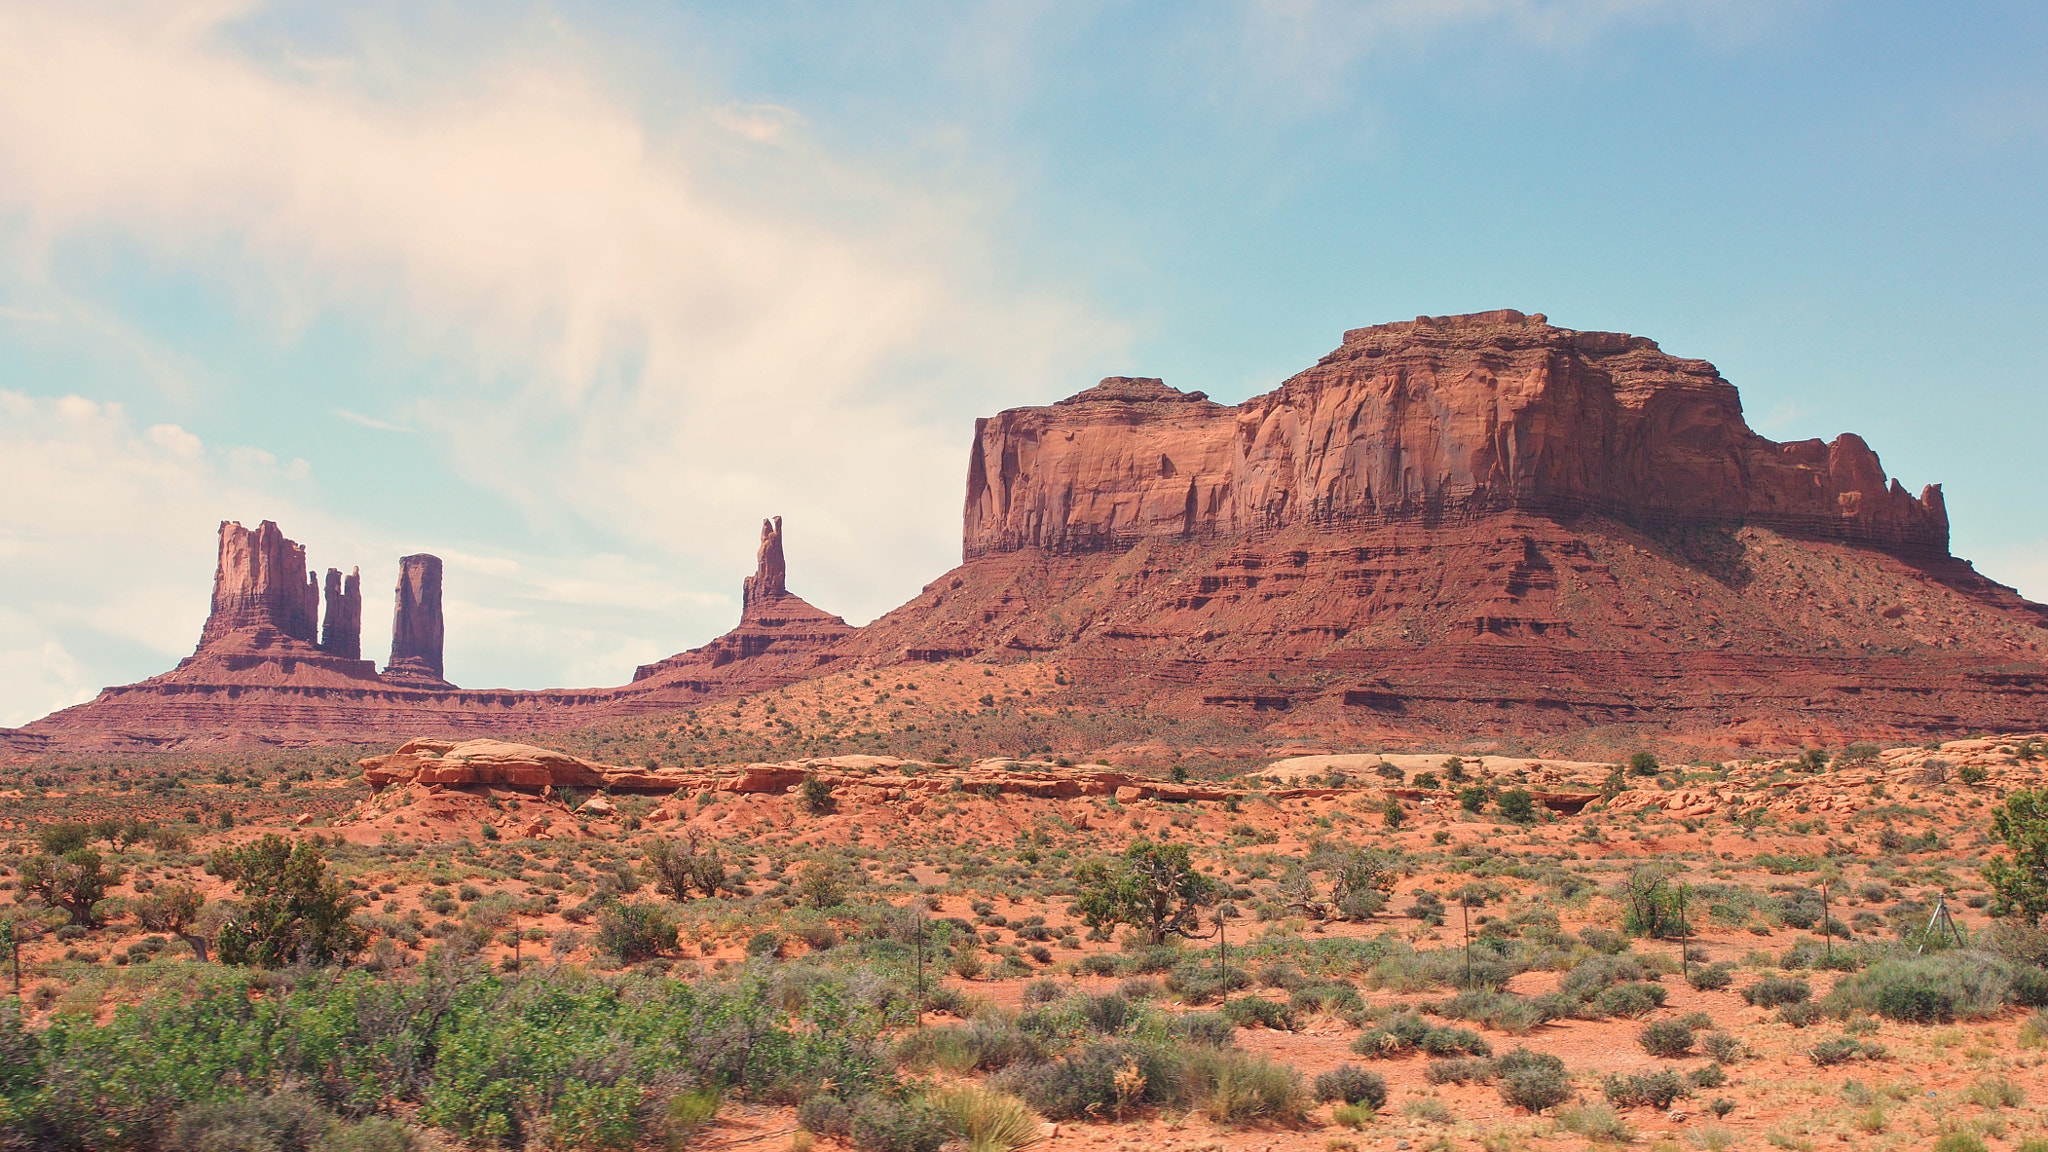 Photograph Monument Valley - Arizona by Matt Johnson / EMJ Fotografi on 500px